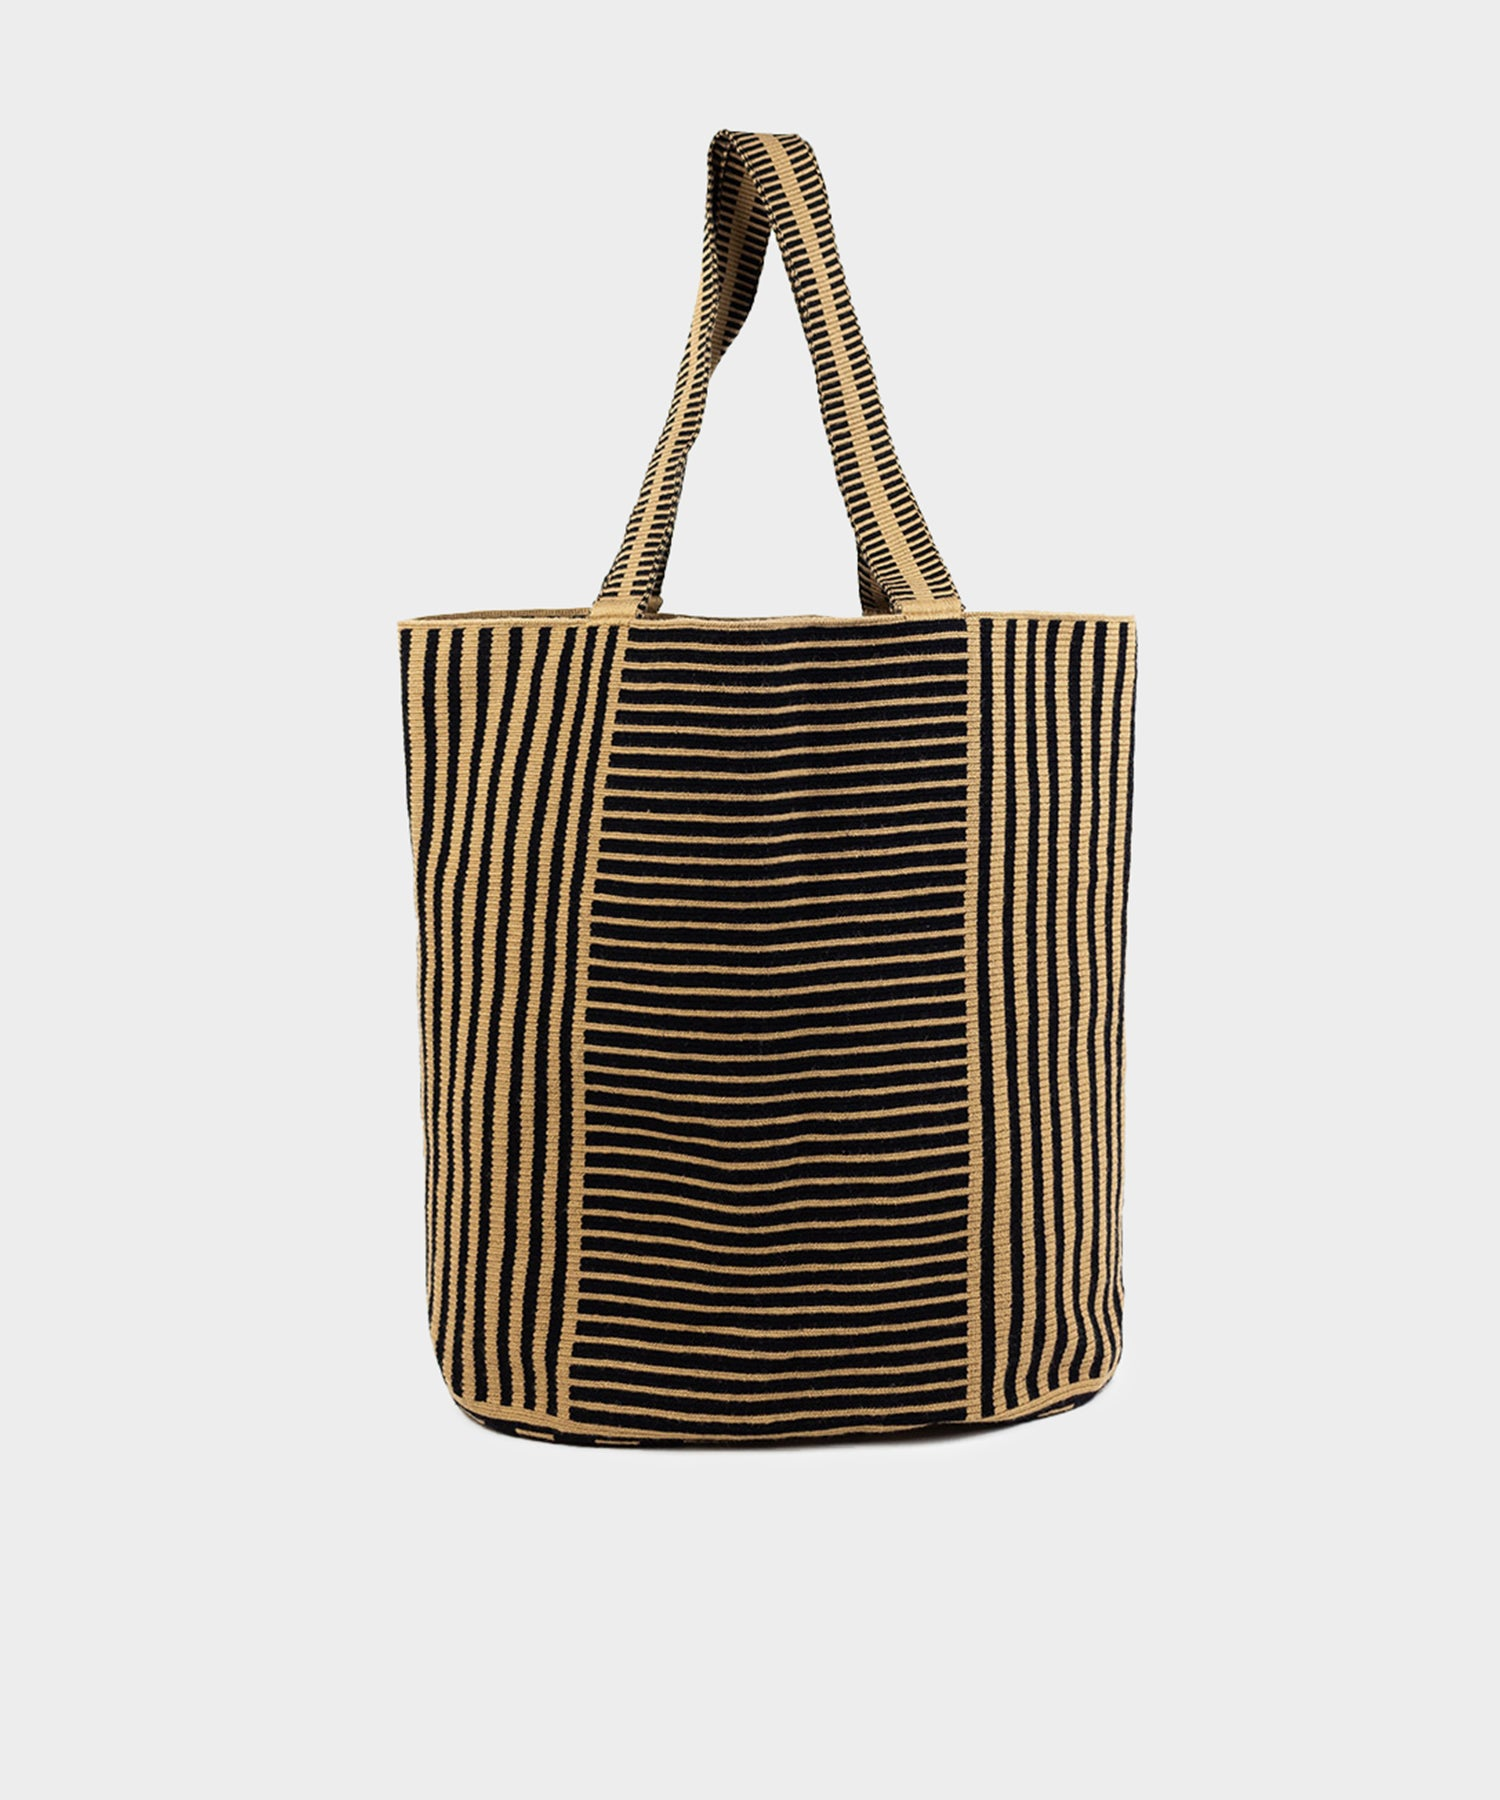 Guanábana Handmade Liam Bag in Black & White Stripe